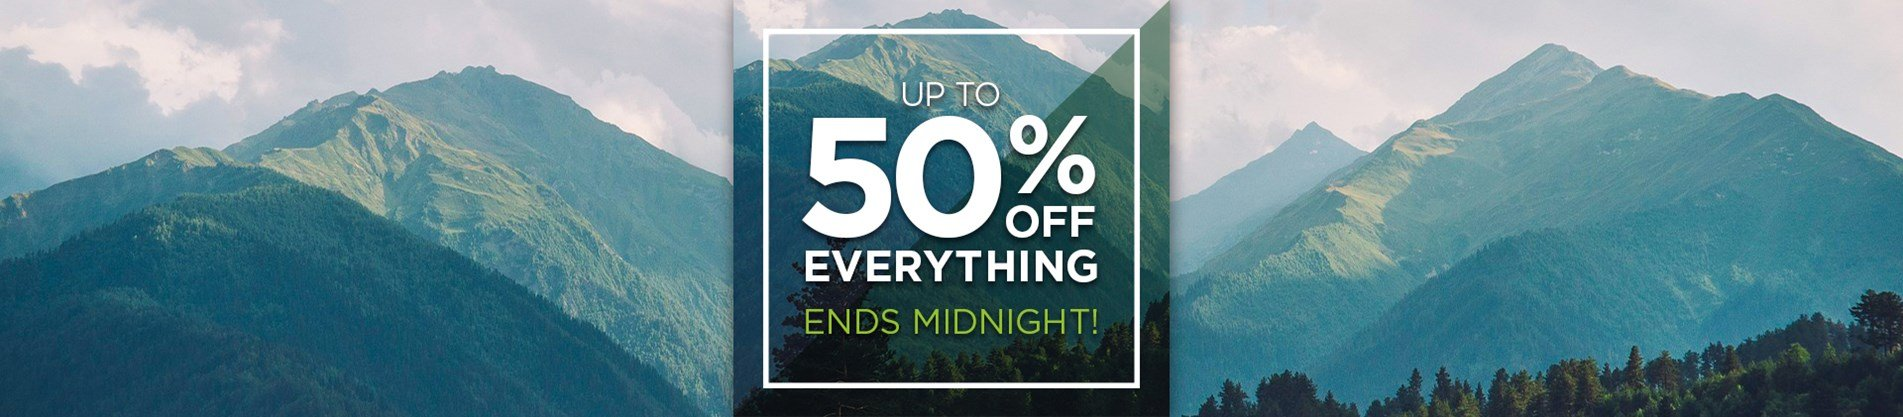 Up To 50% Off Everything - Ends Midnight!